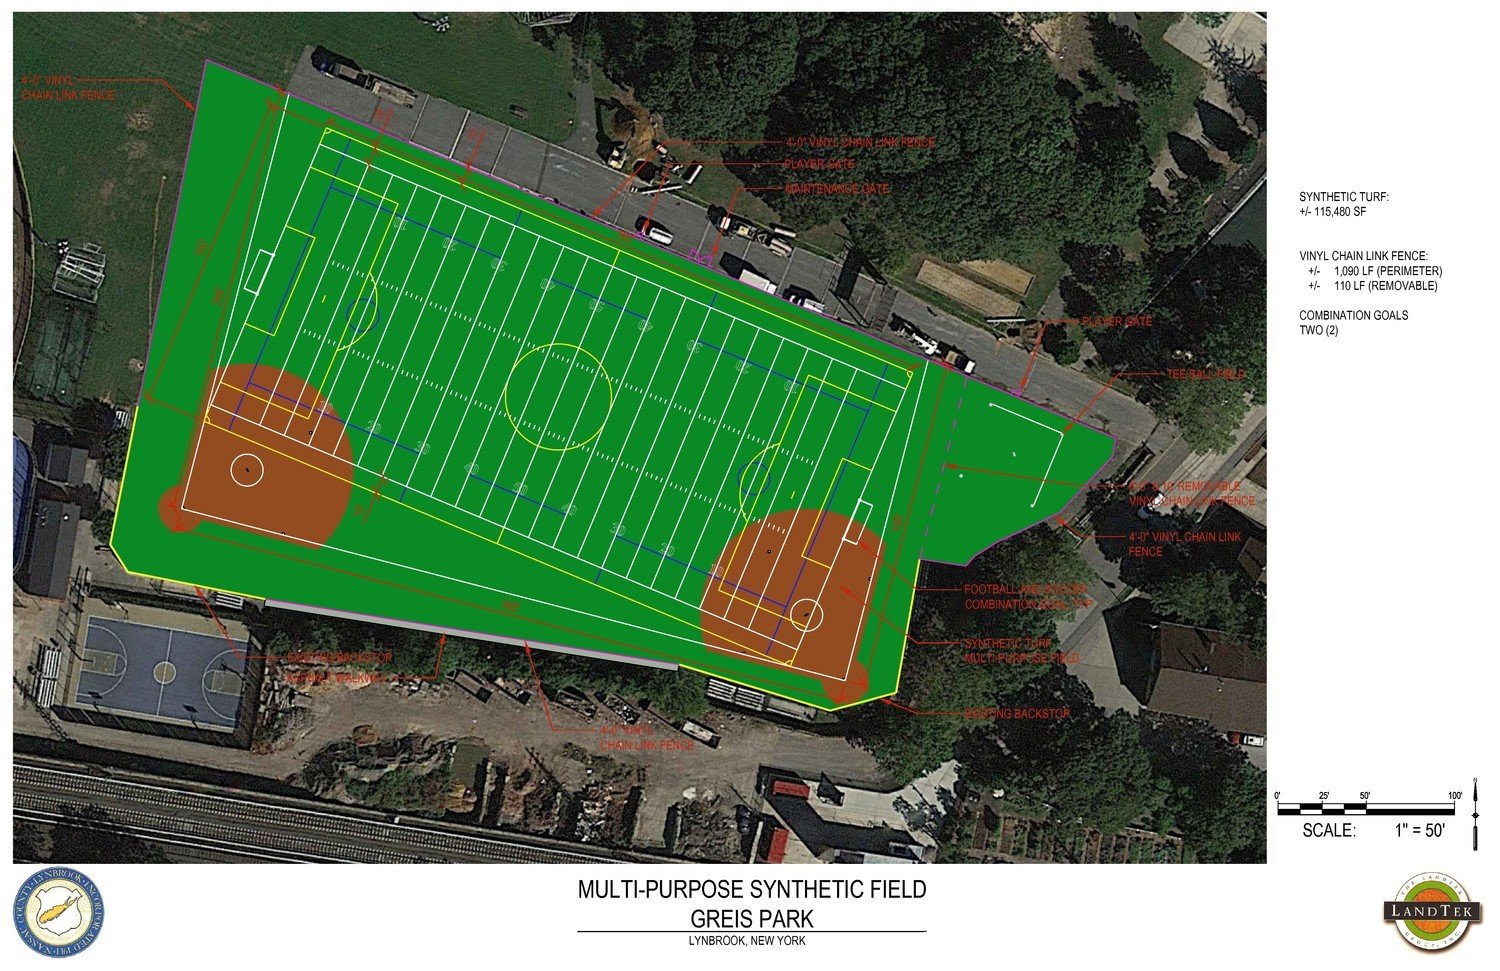 In March, Representatives of the Amityville-based LandTek Group proposed building a $1.4 million artificial-turf field at Greis Park to the Lynbrook board. Village officials have expressed interest, but are still thinking it over.